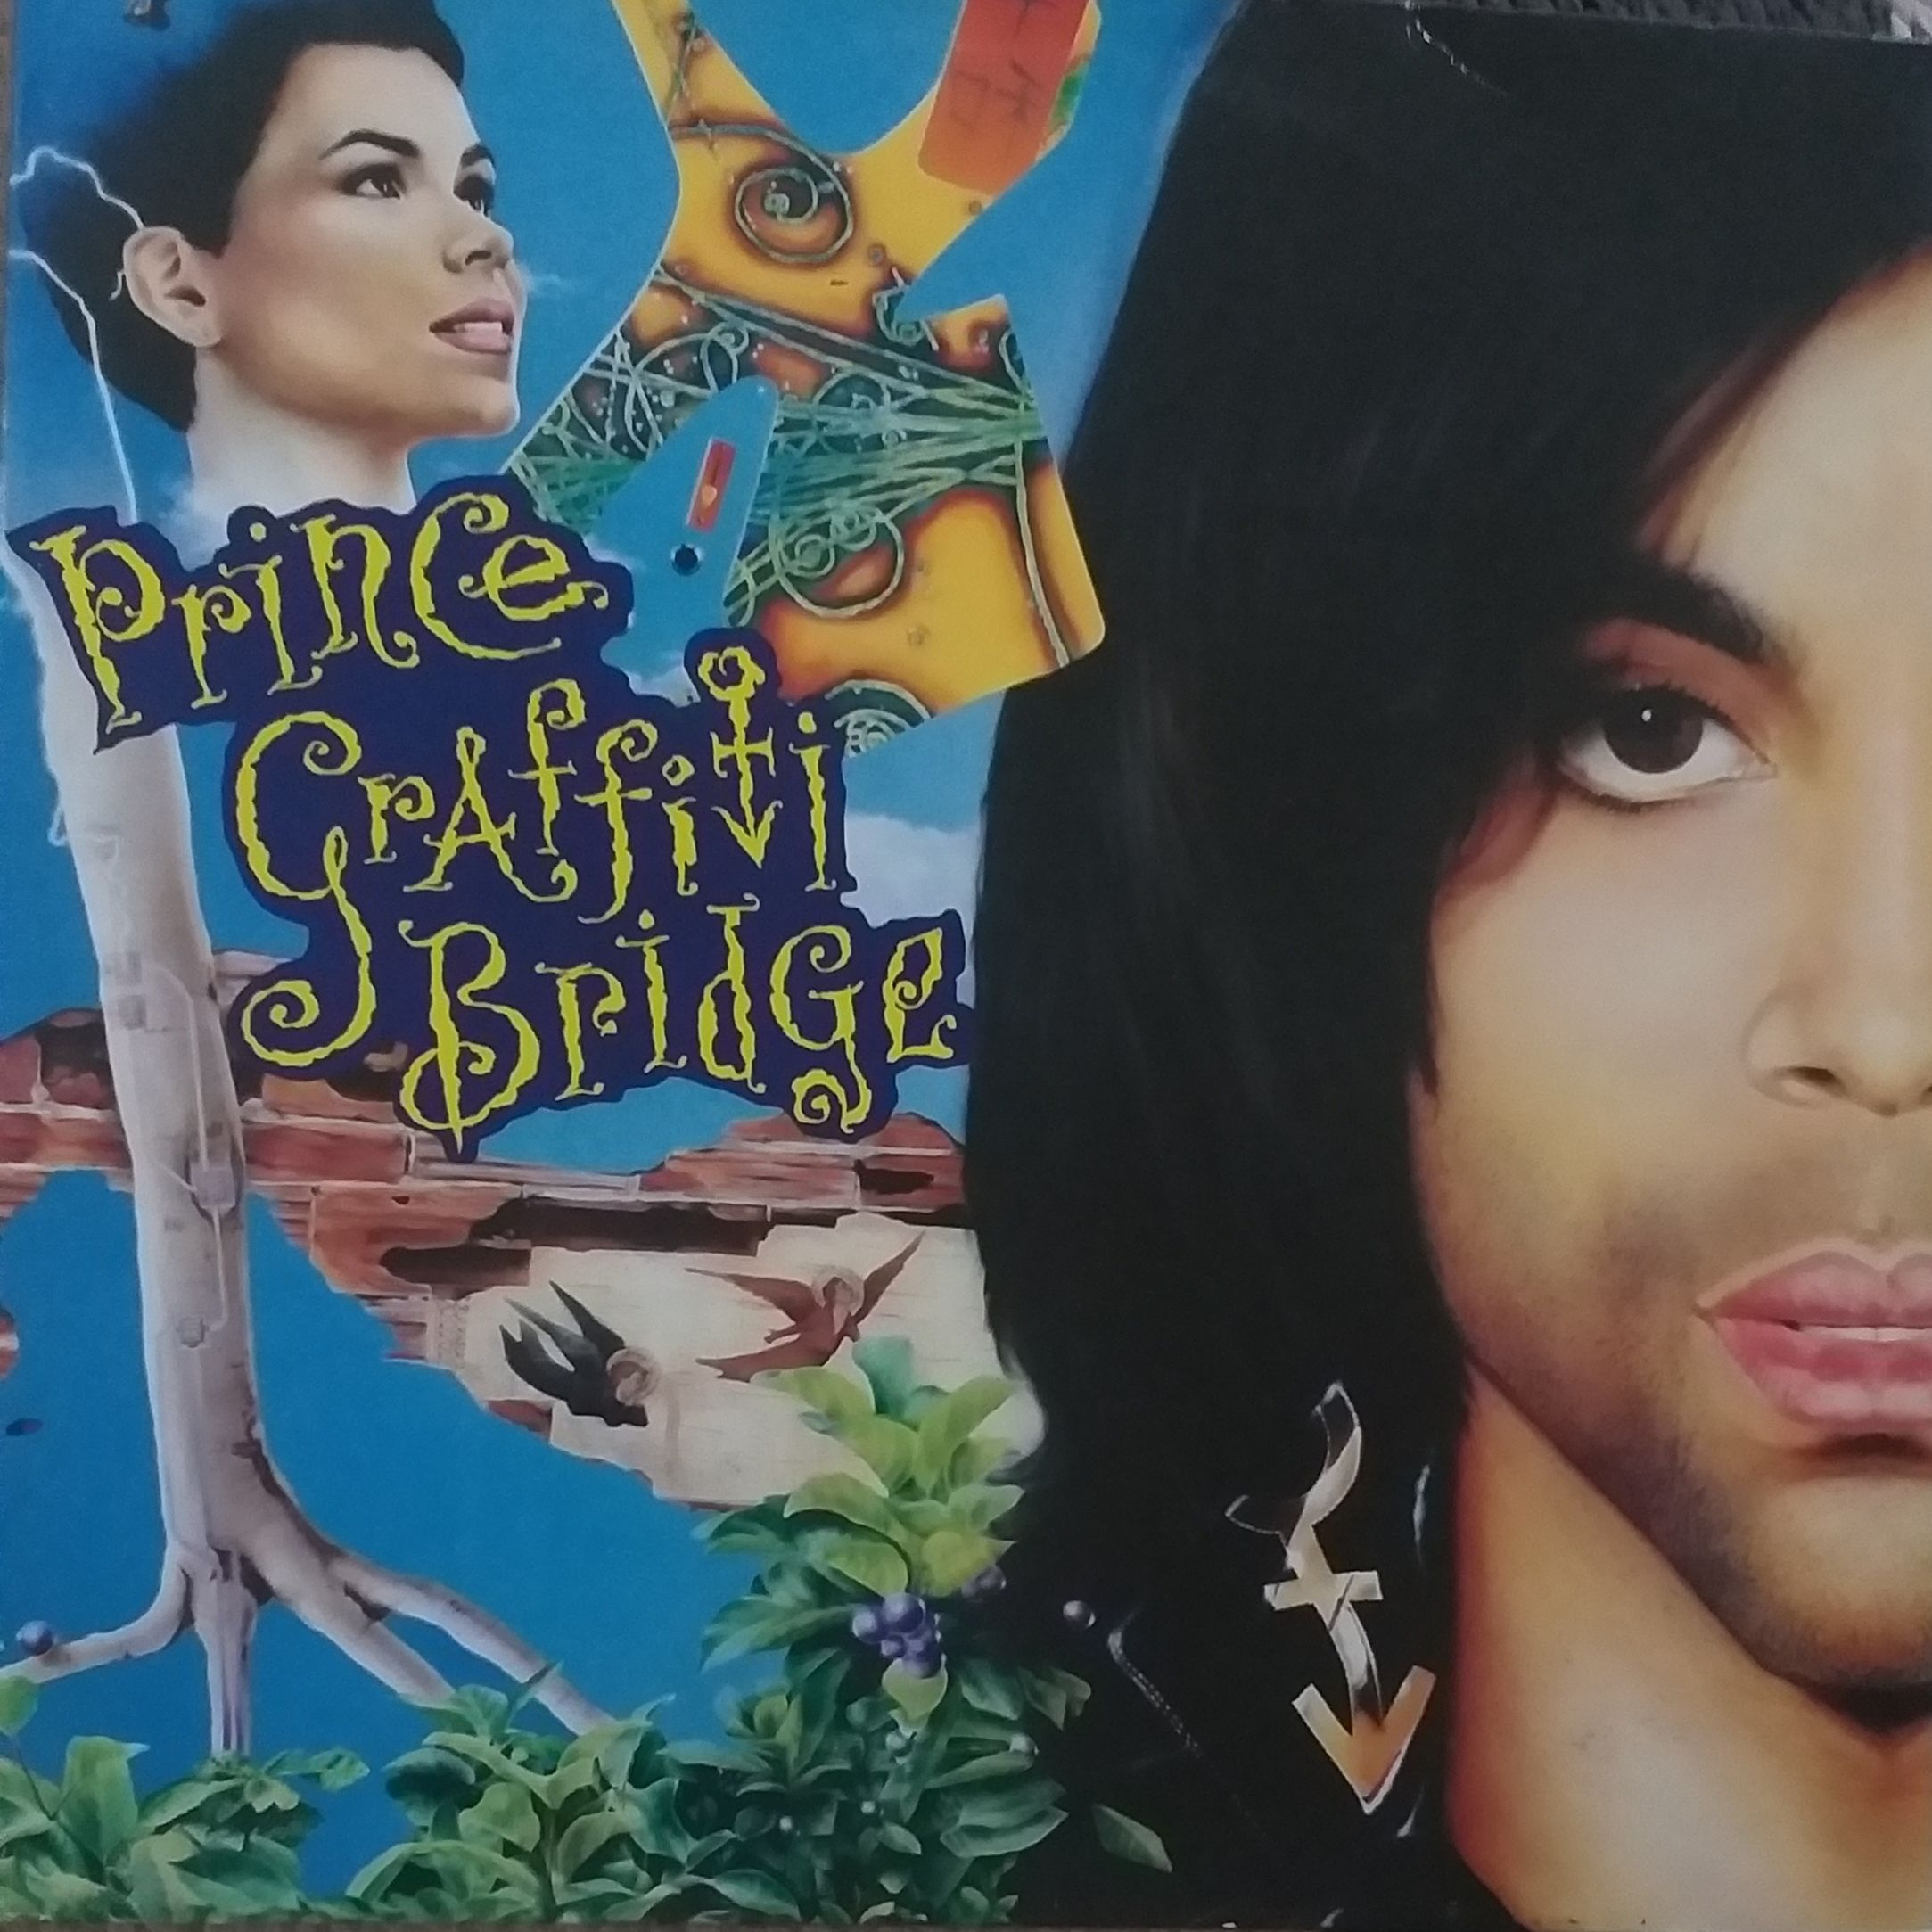 Prince Graffiti bridge LP undefined